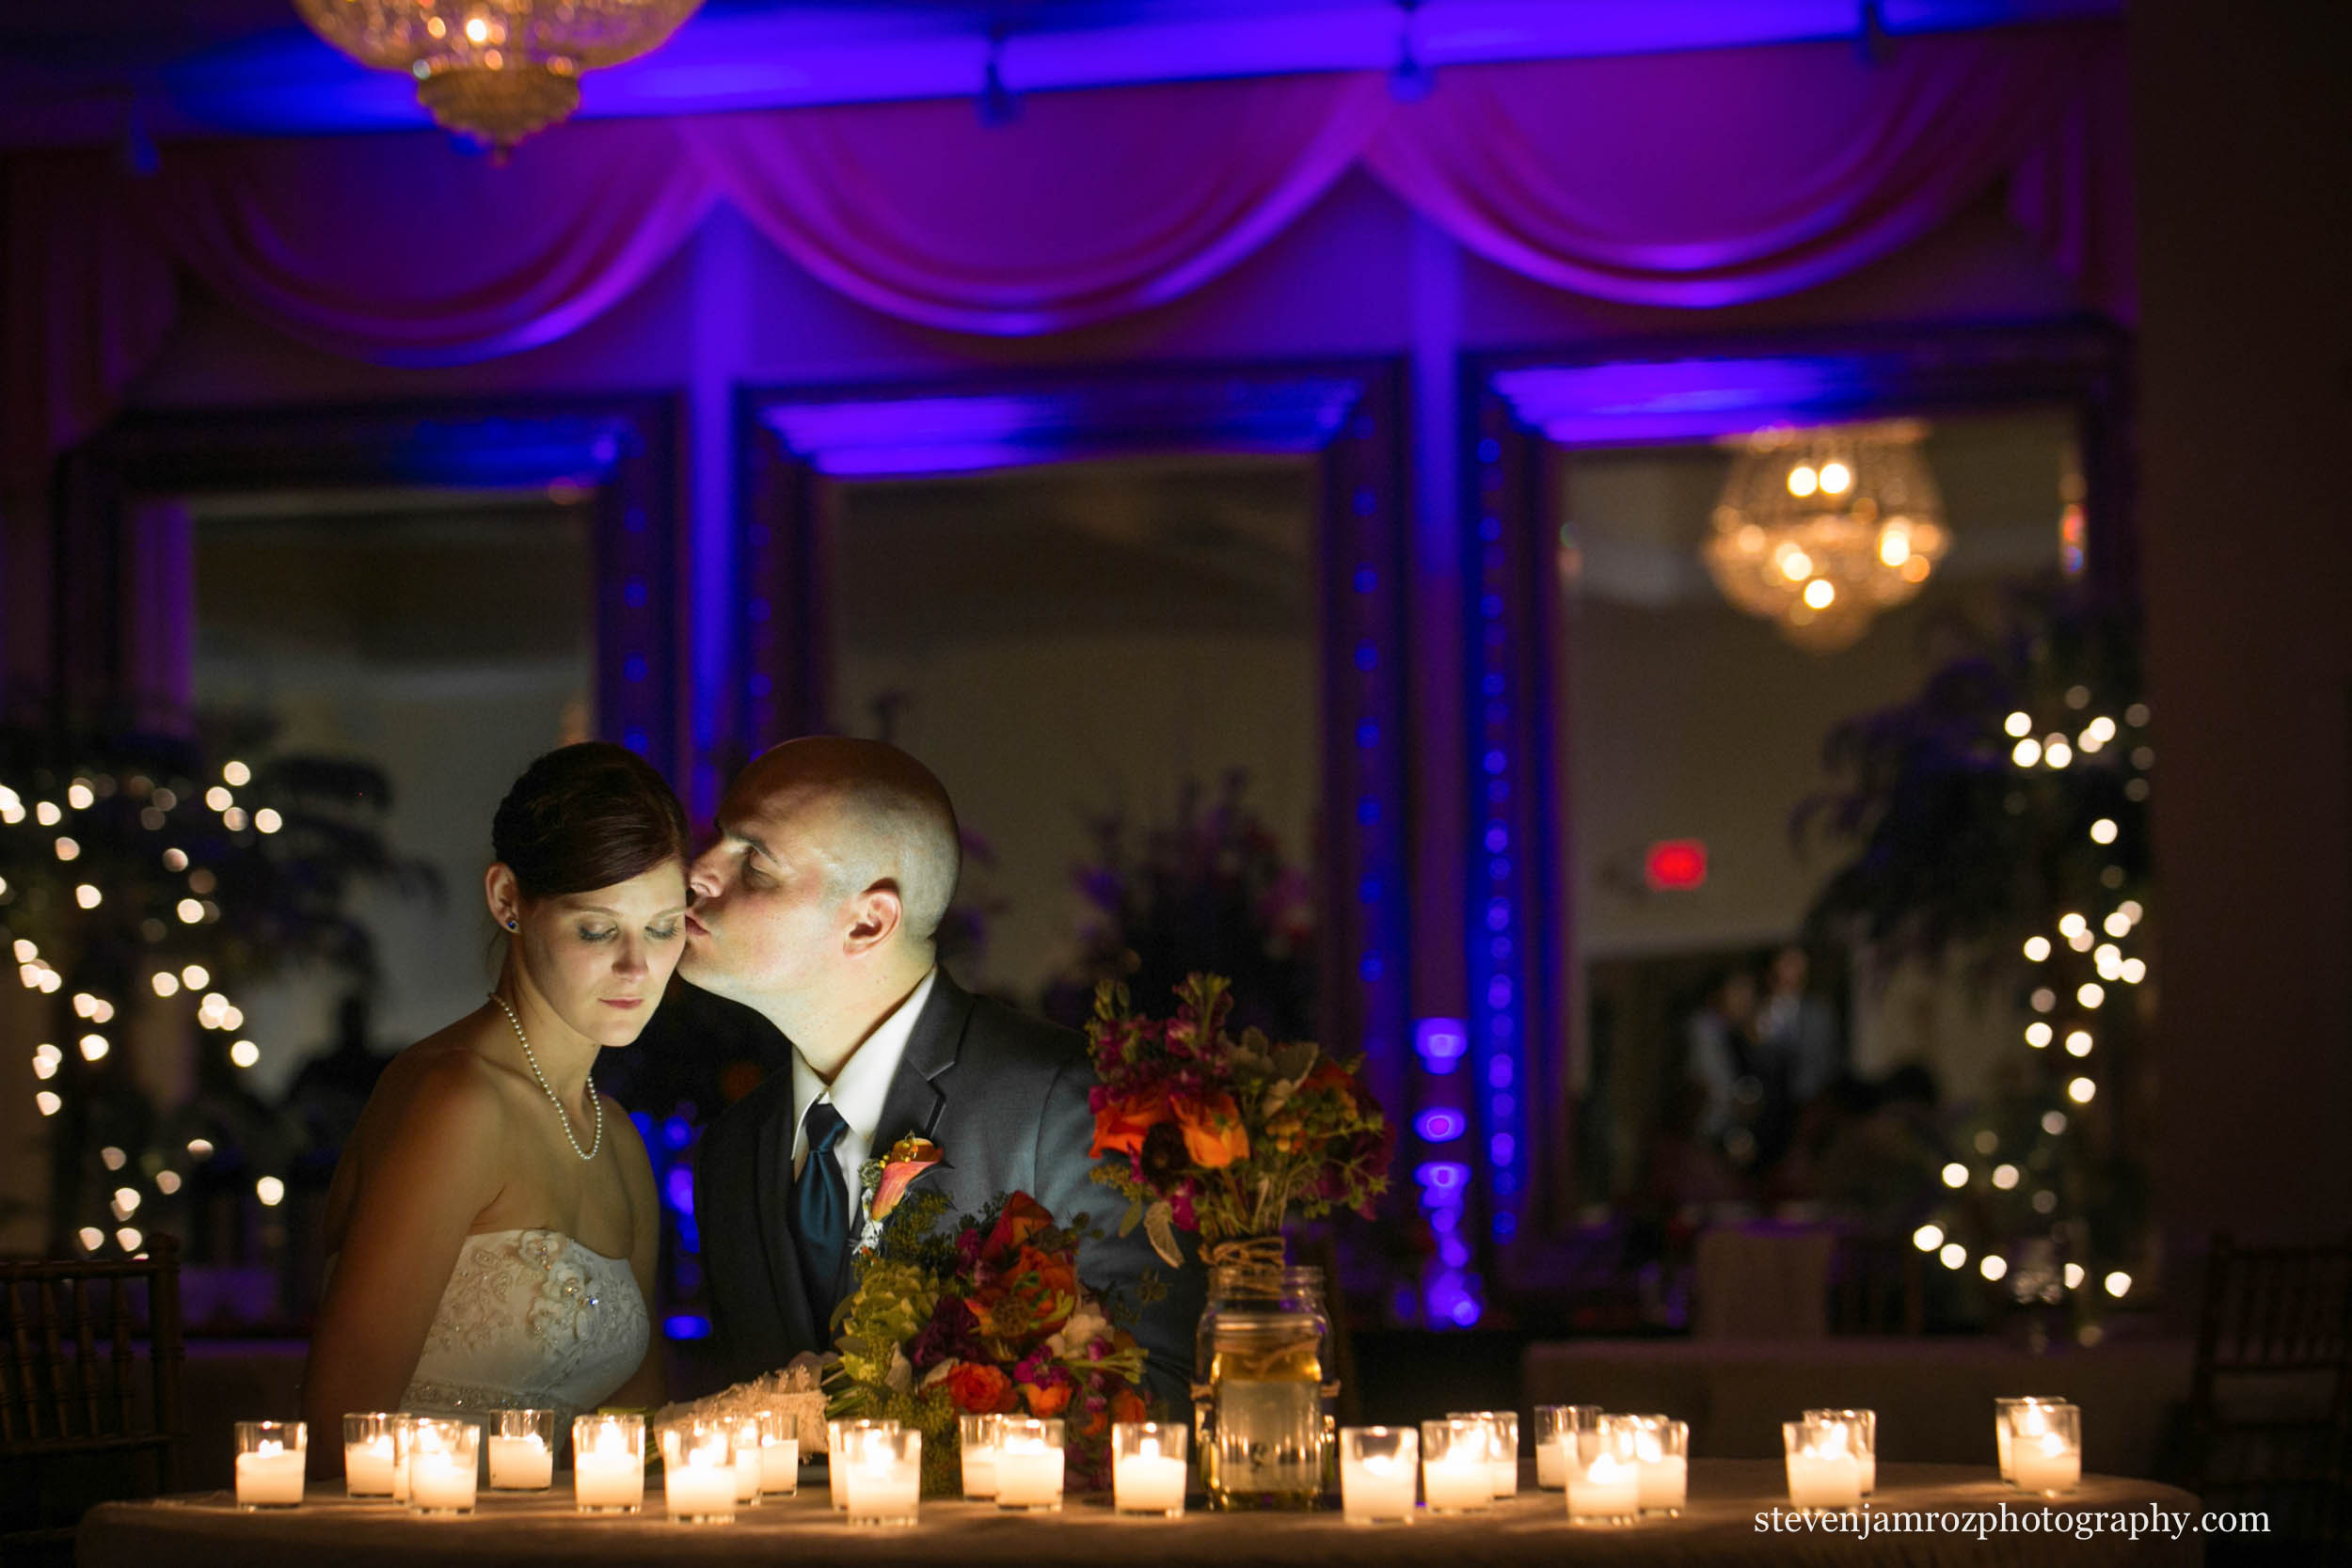 steven-jamroz-photography-hudson-manor-grand-ballroom-wedding-0510.jpg